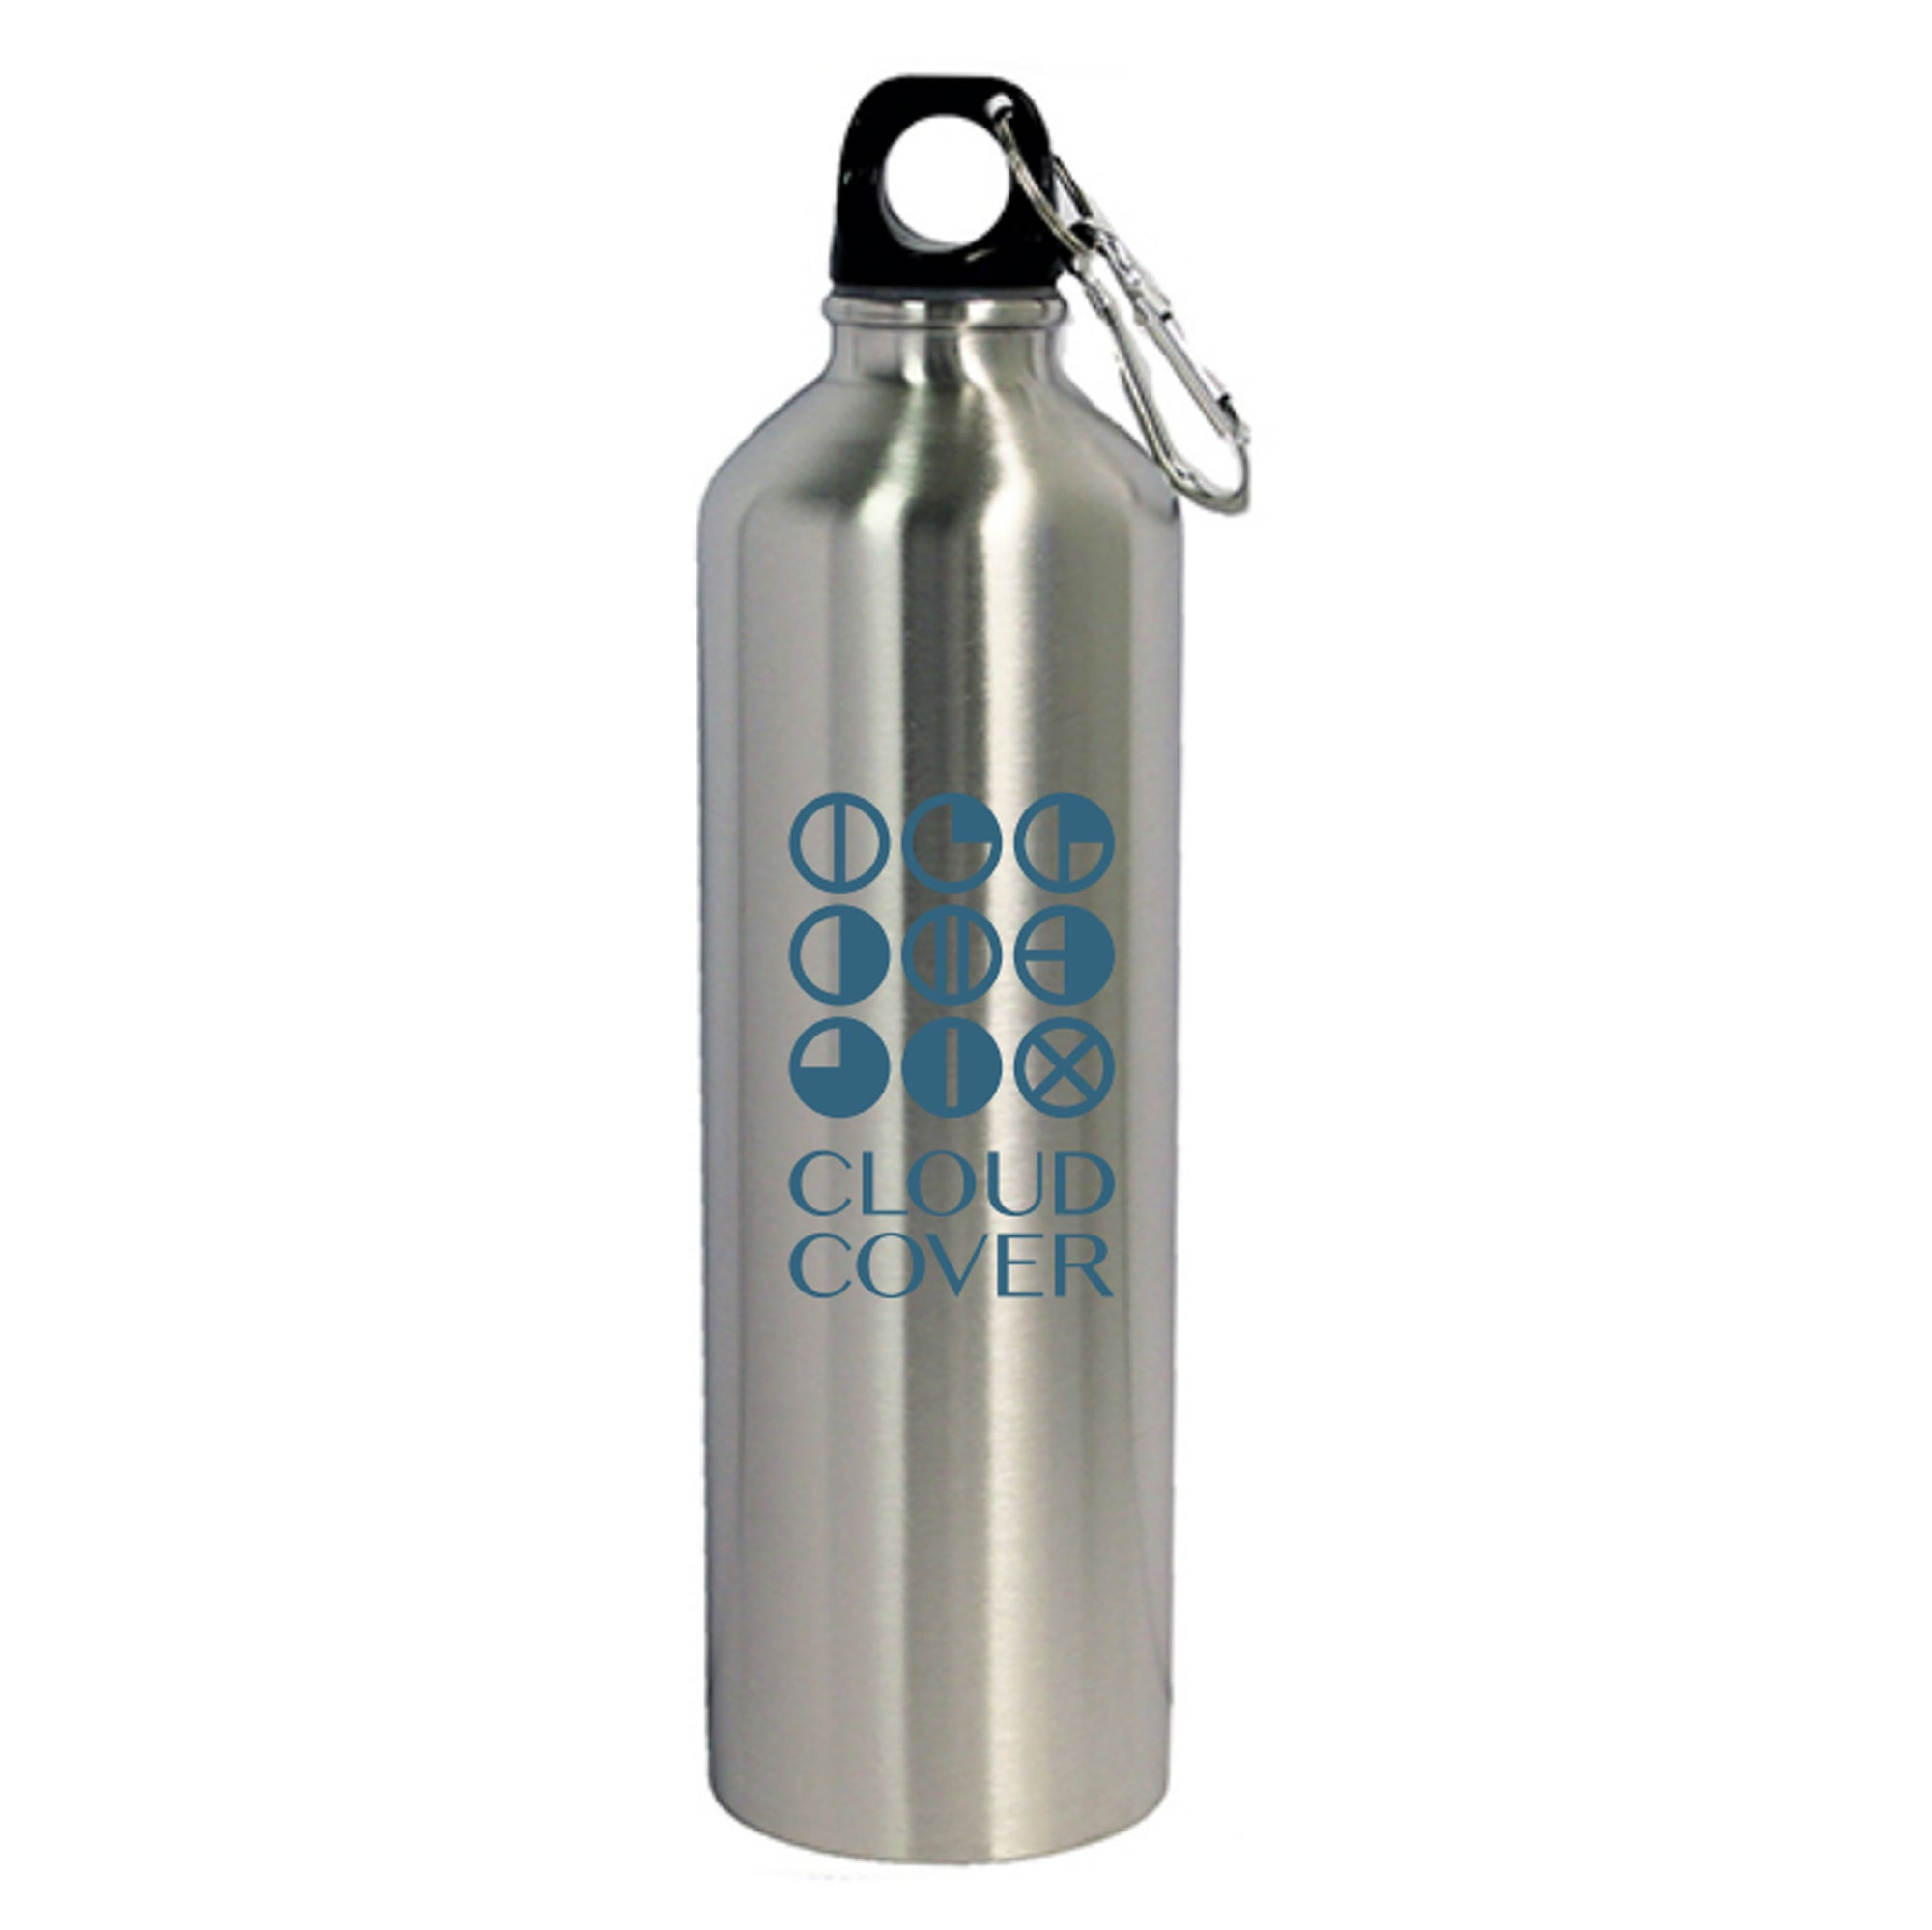 CLASSIC LOGO 25 fl oz Stainless Steel Water Bottle